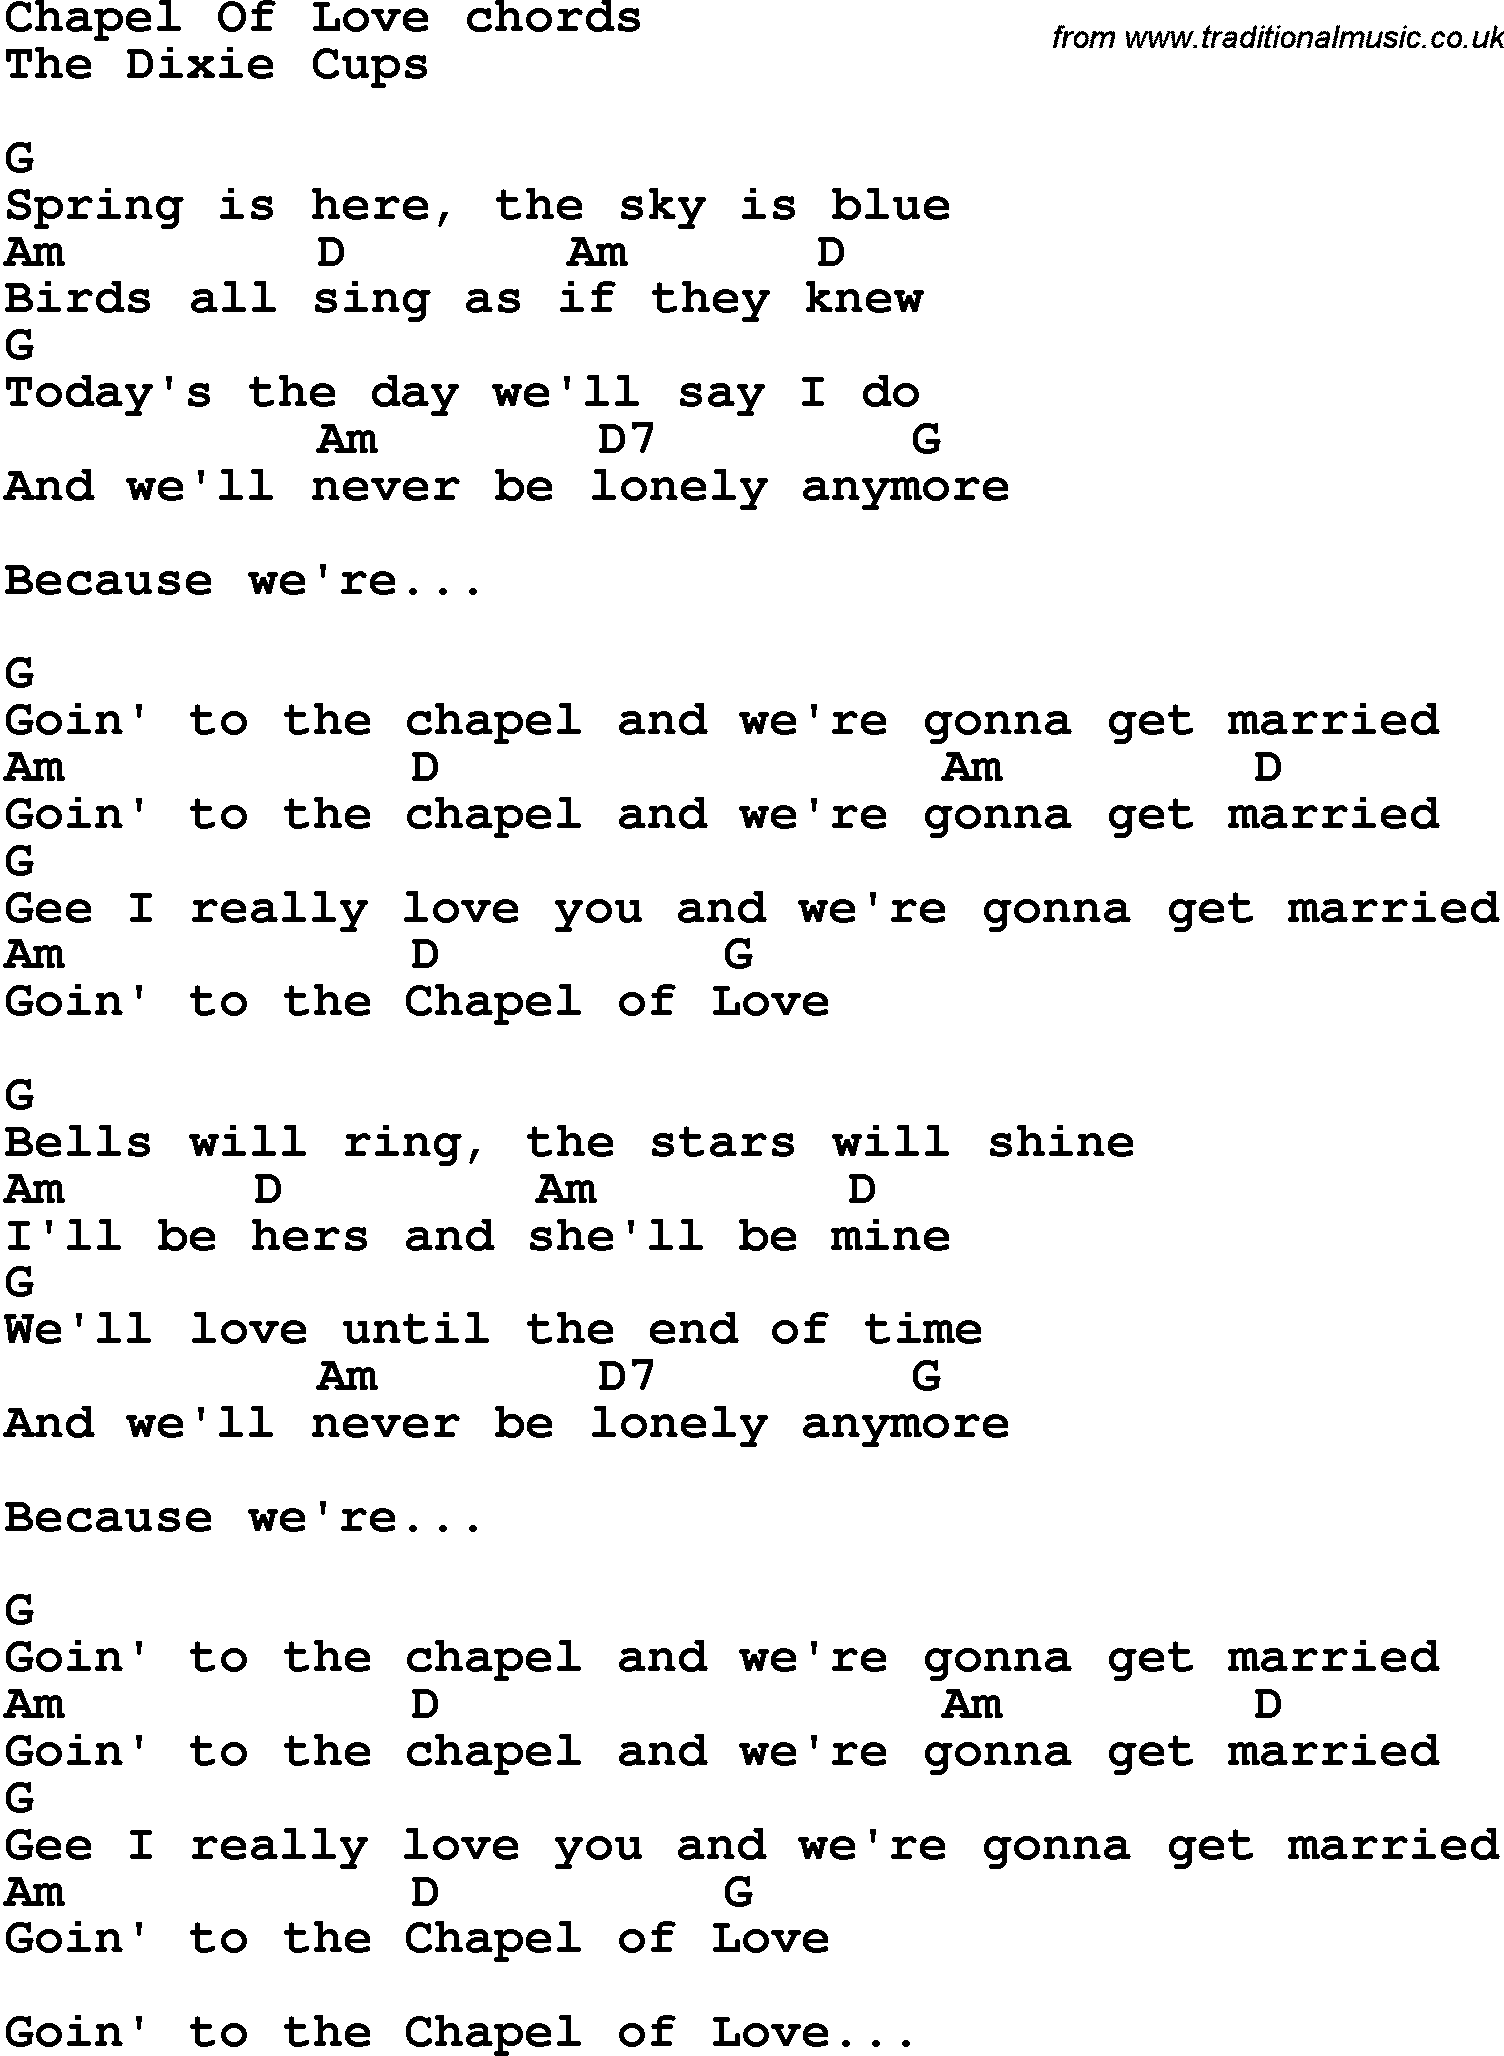 Song Lyrics With Guitar Chords For Chapel Of Love